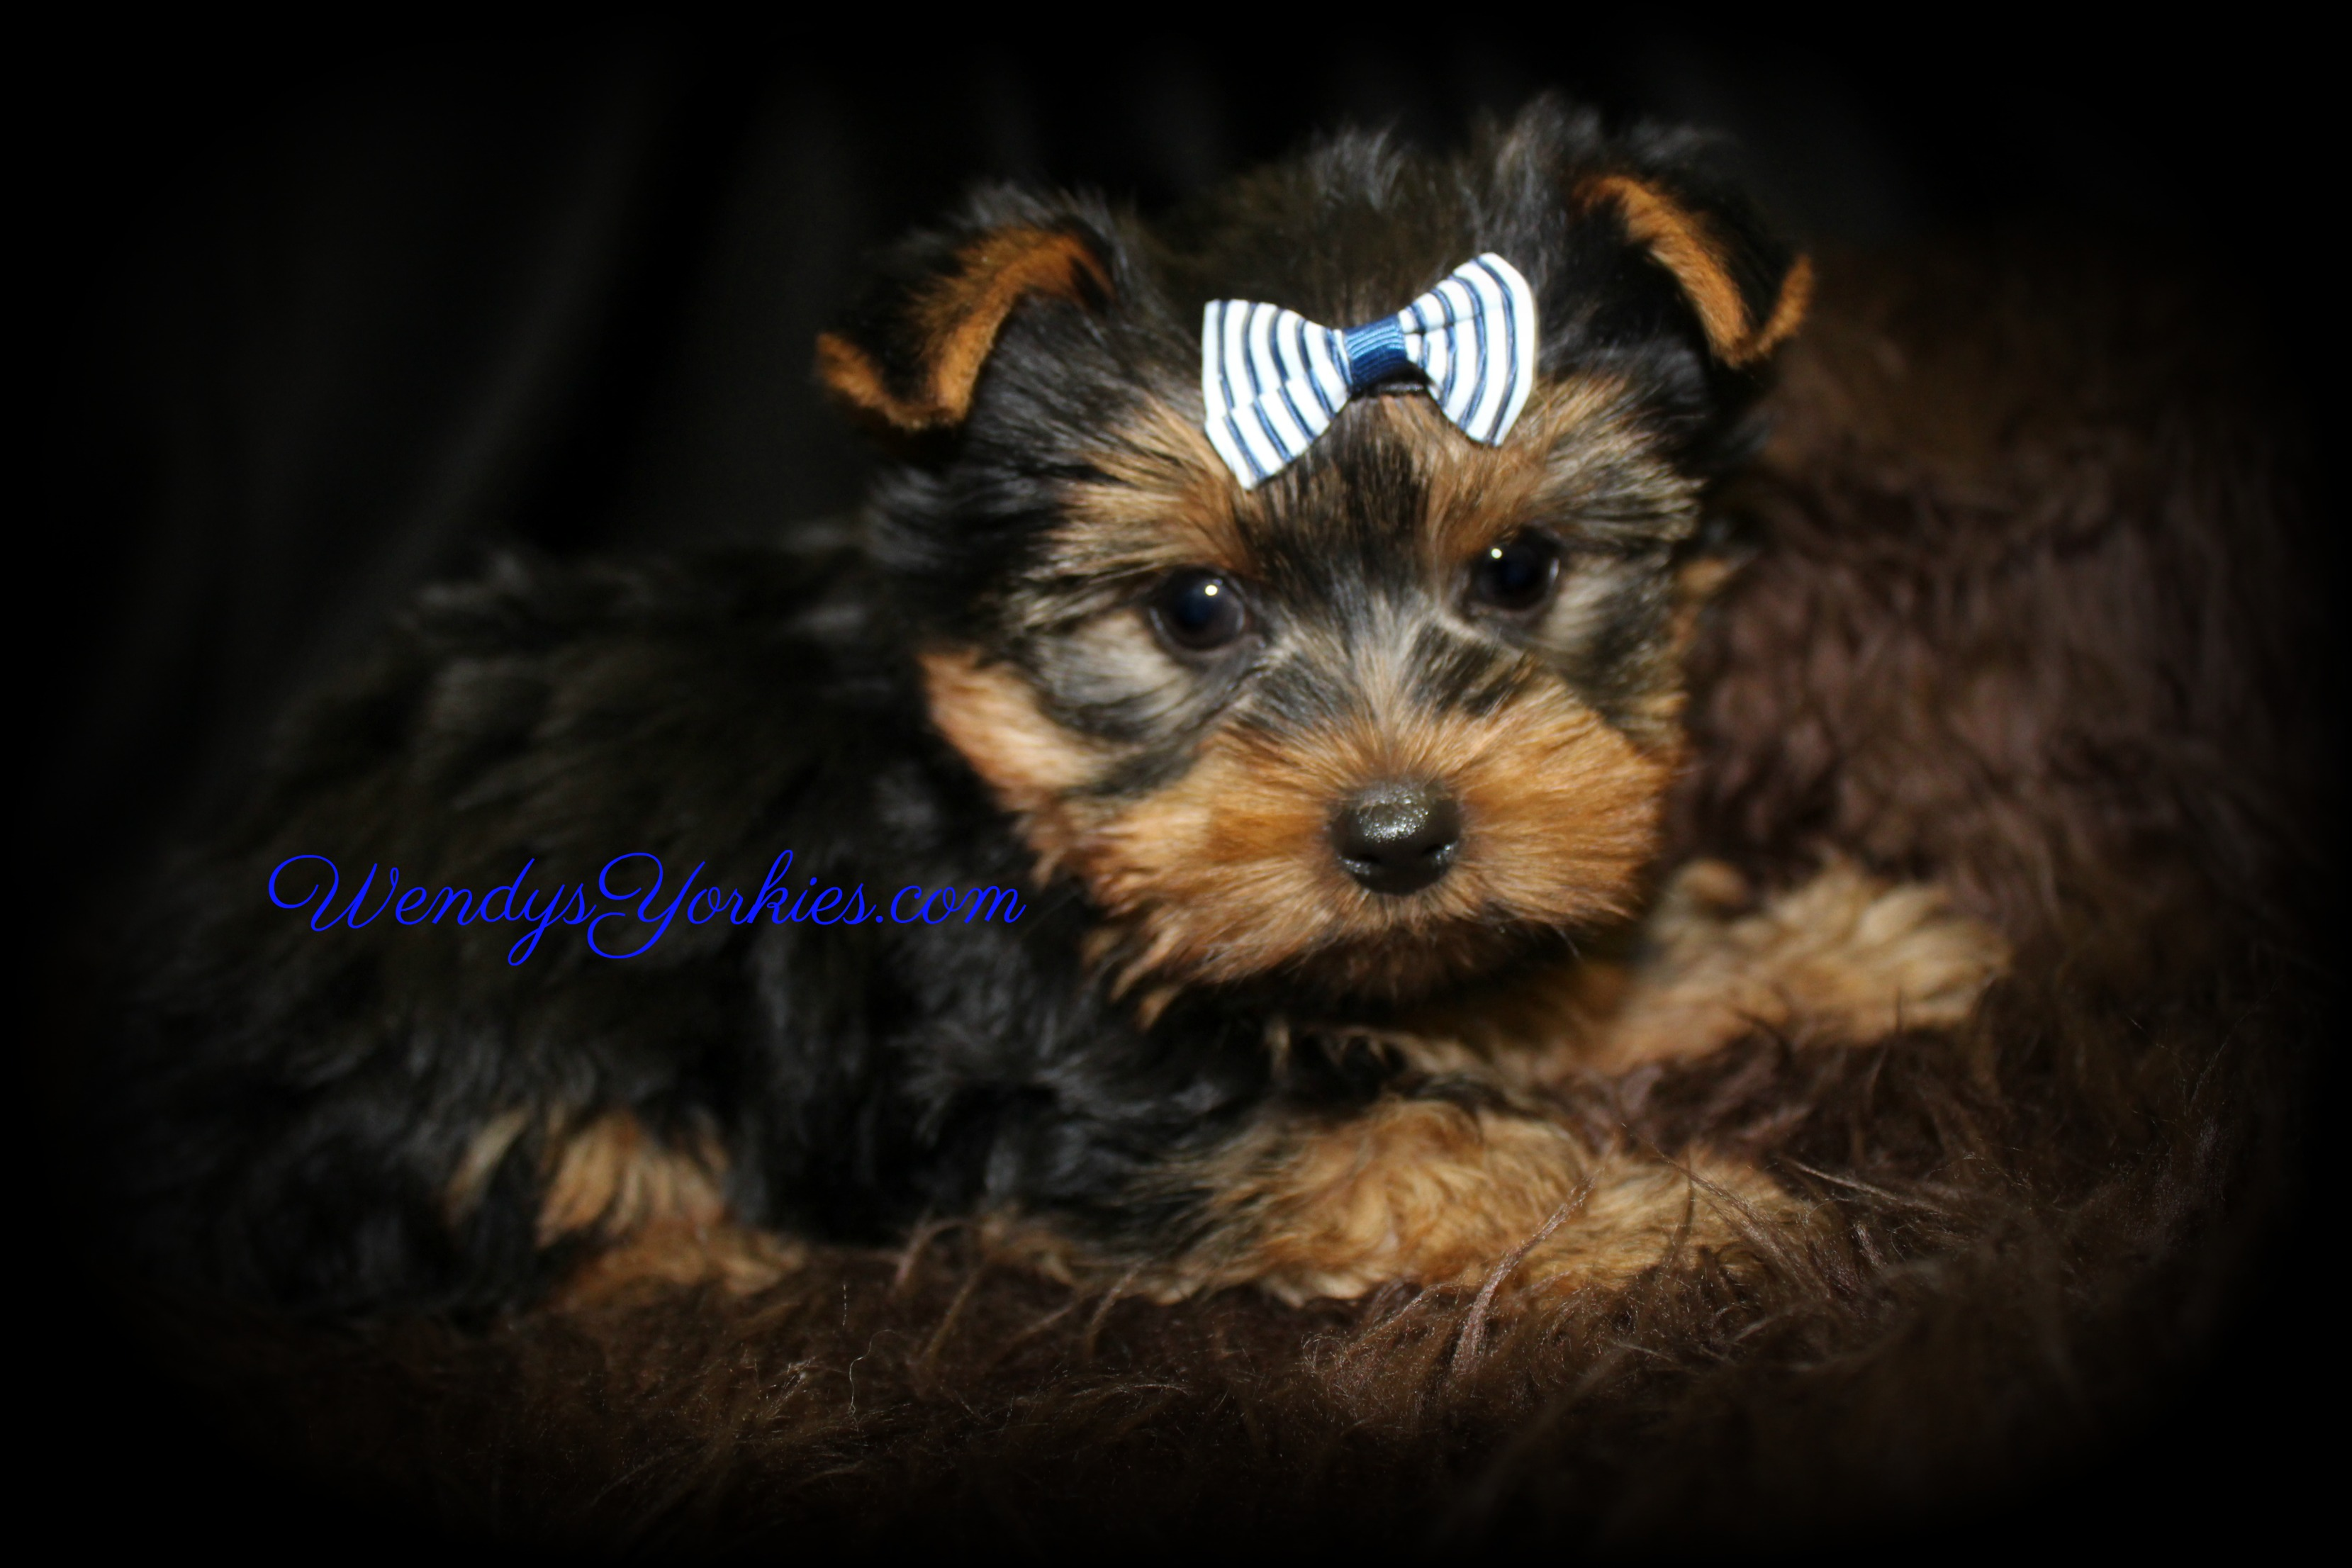 Toy Yorkie puppies for sale, WendysYorkies.com, Star m1